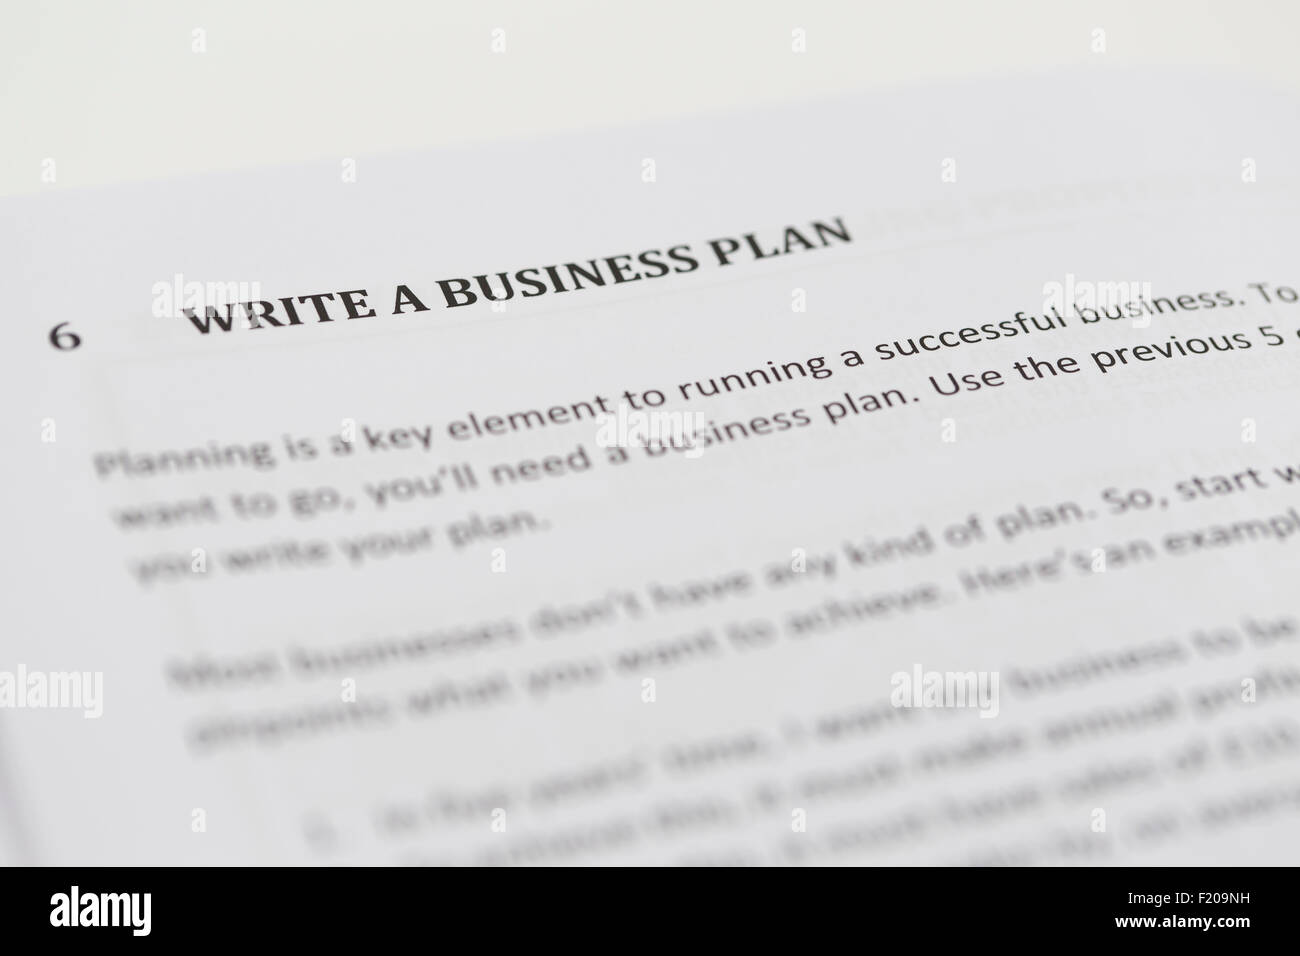 Write a Business Plan - Stock Image